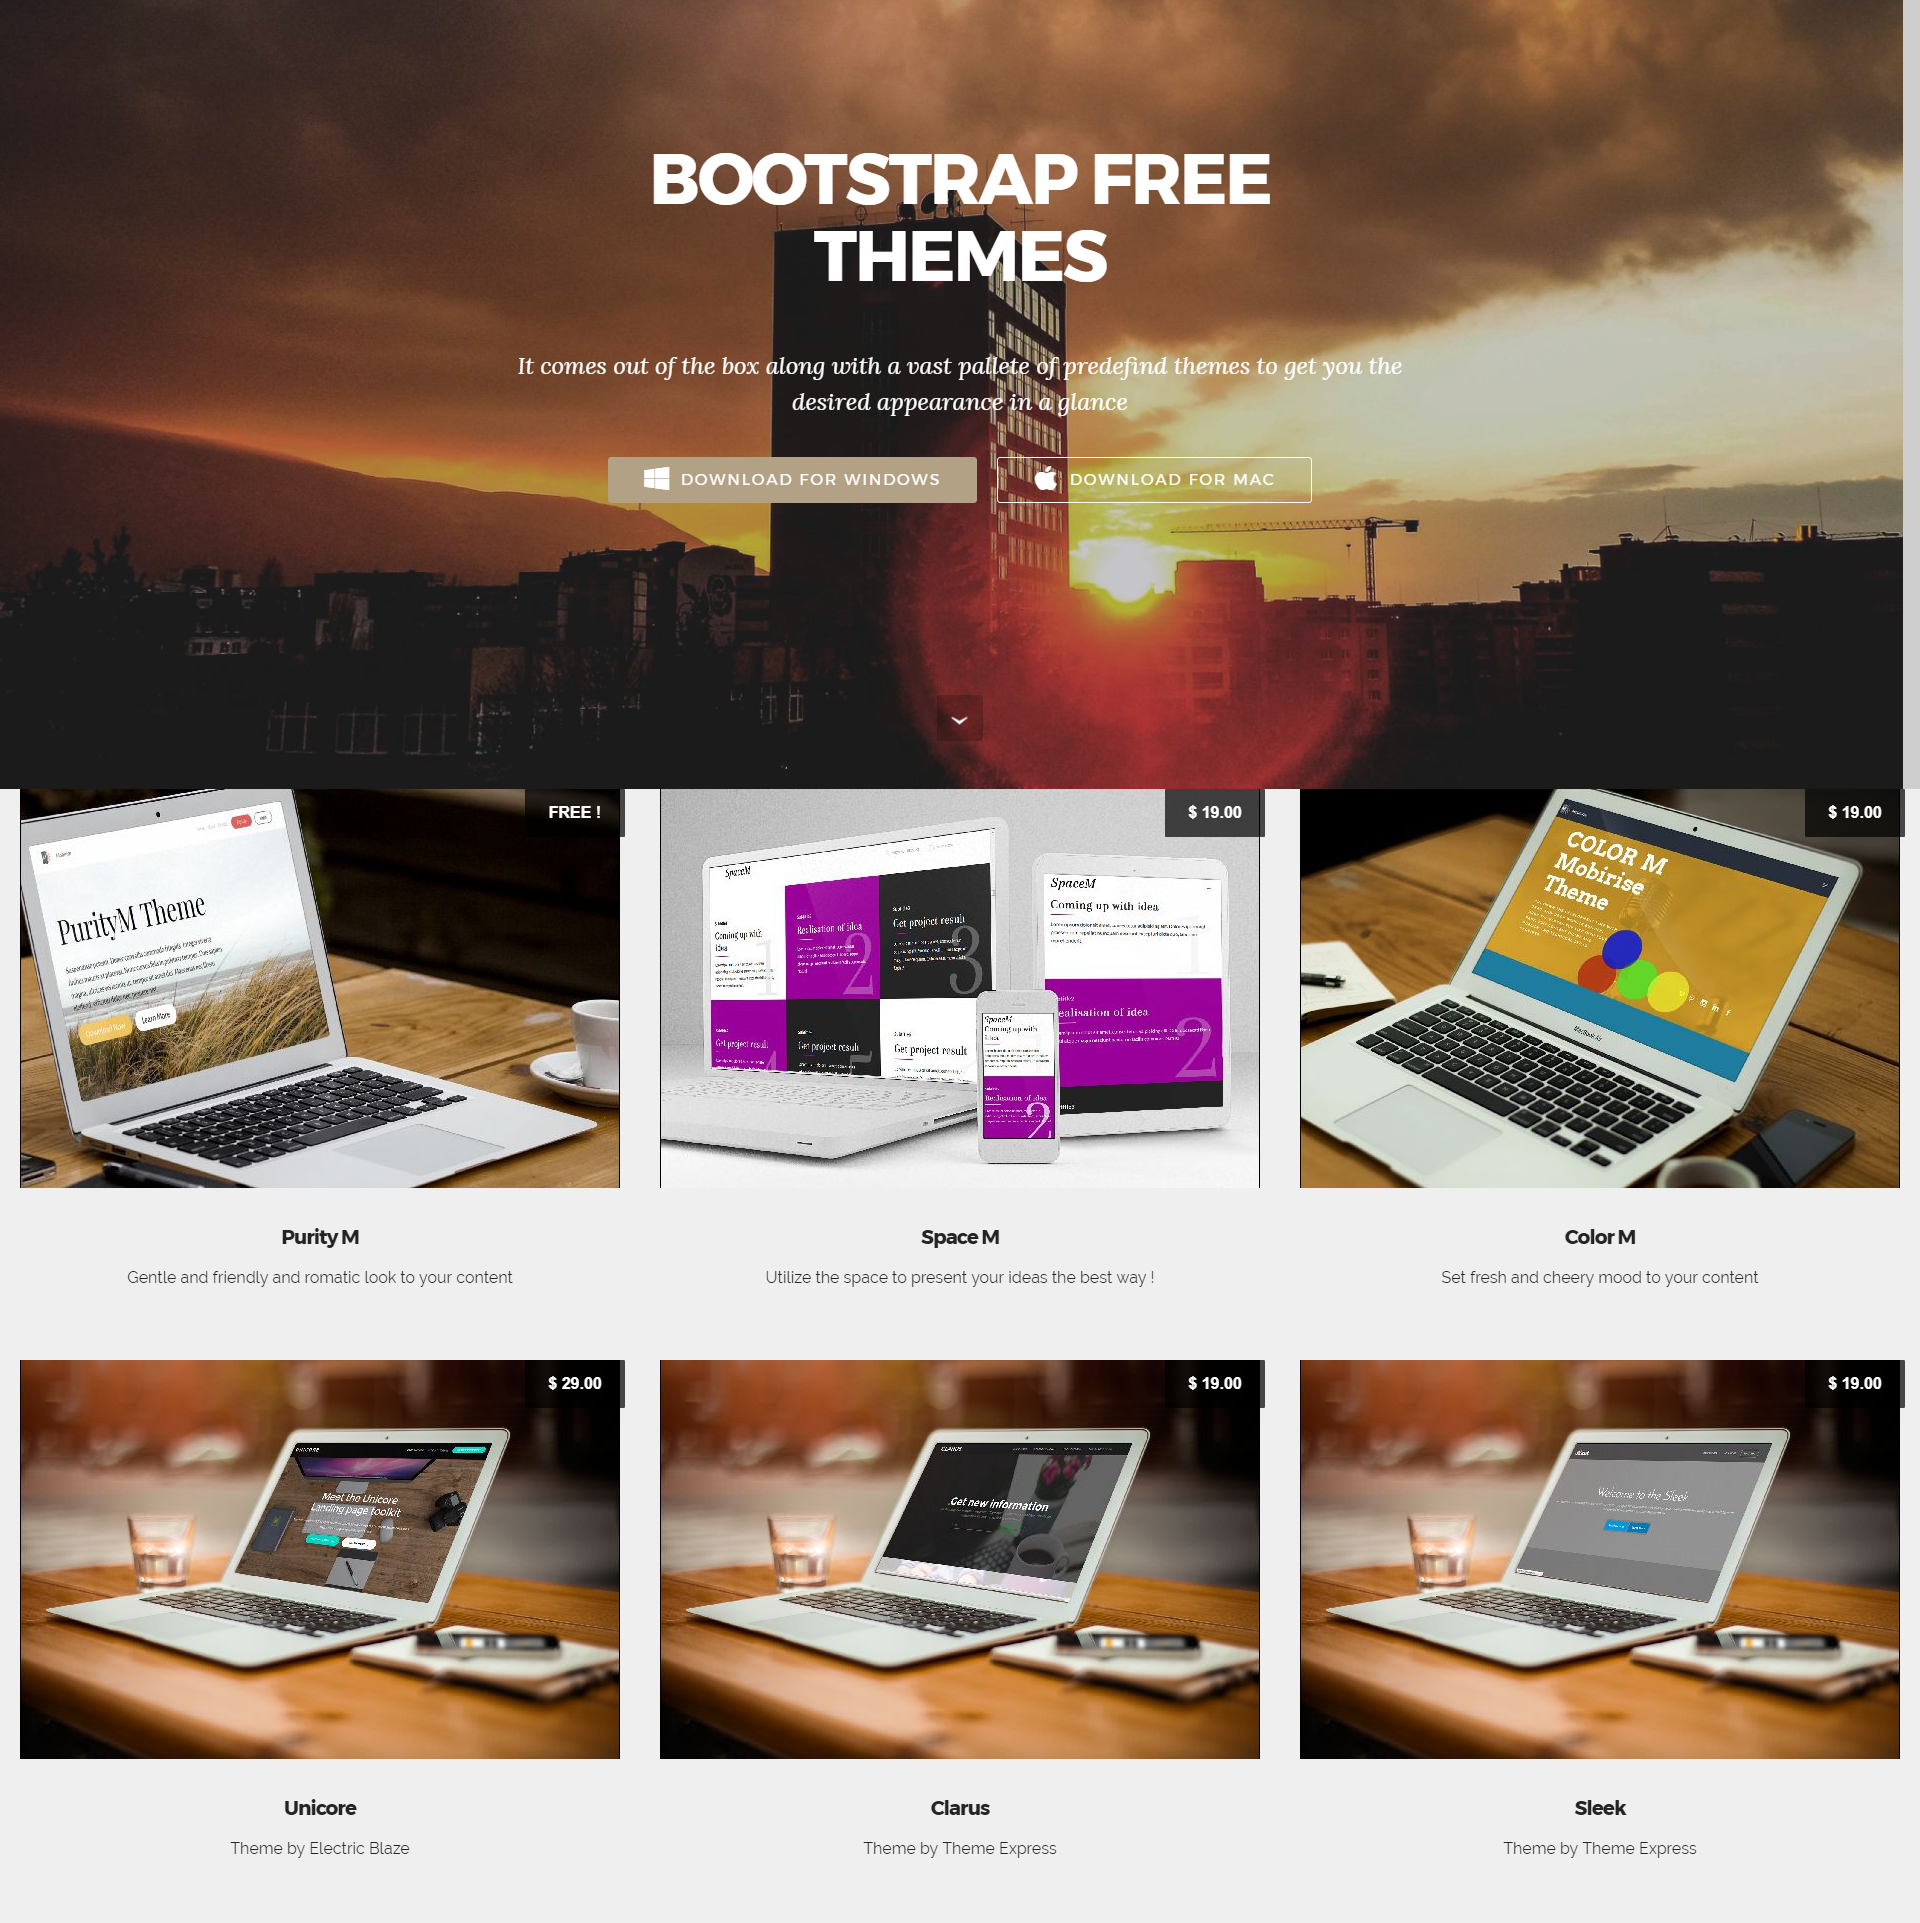 CSS3 Bootstrap Mobile-friendly Templates